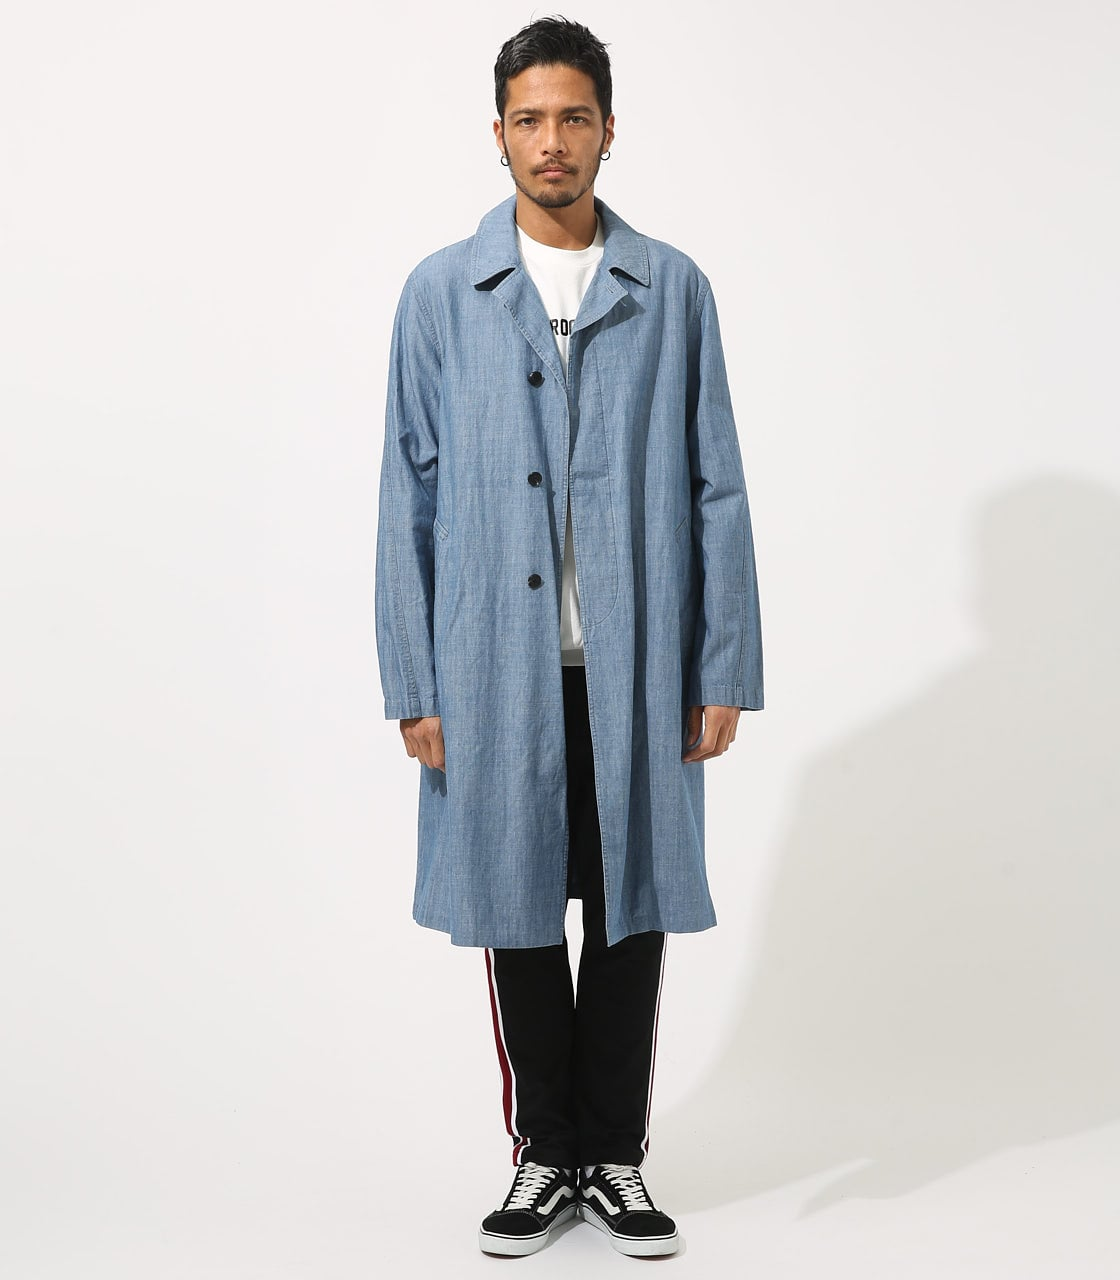 【AZUL BY MOUSSY】SOUTIEN COLLAR LONG COAT 詳細画像 BLU 5